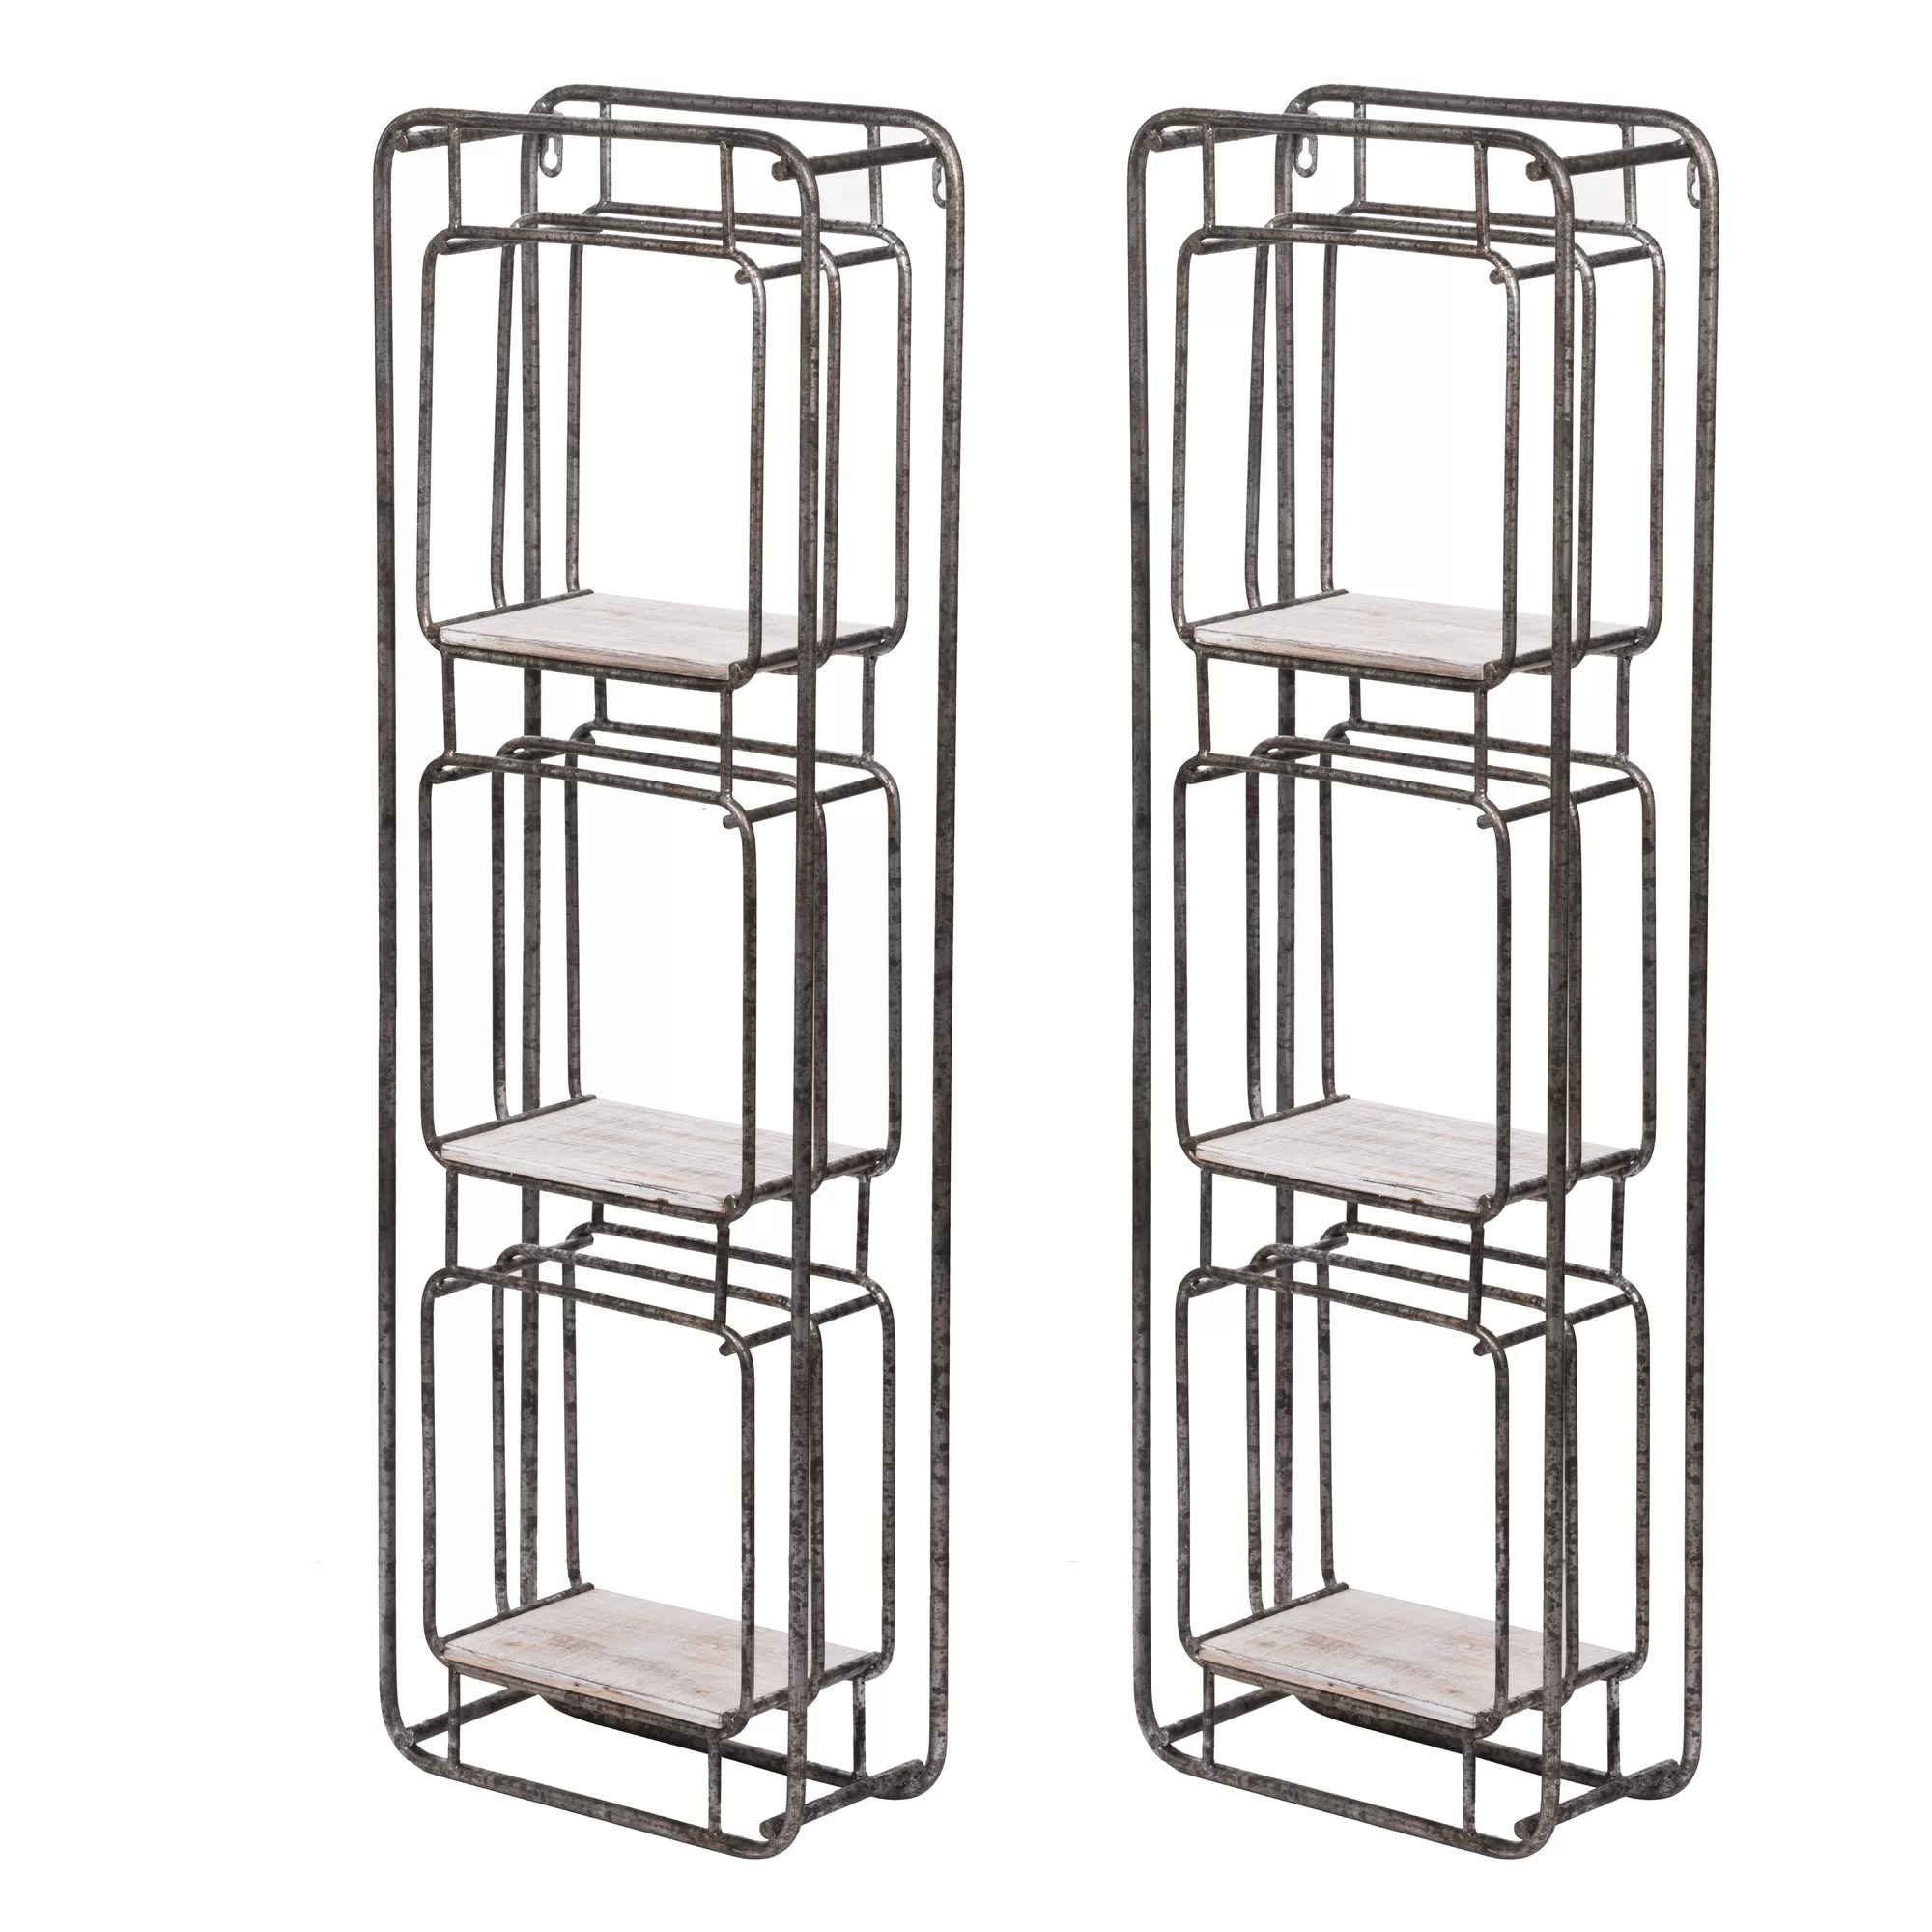 Details About A B Home Metro 36 H X 11 8 W Shelving Unit